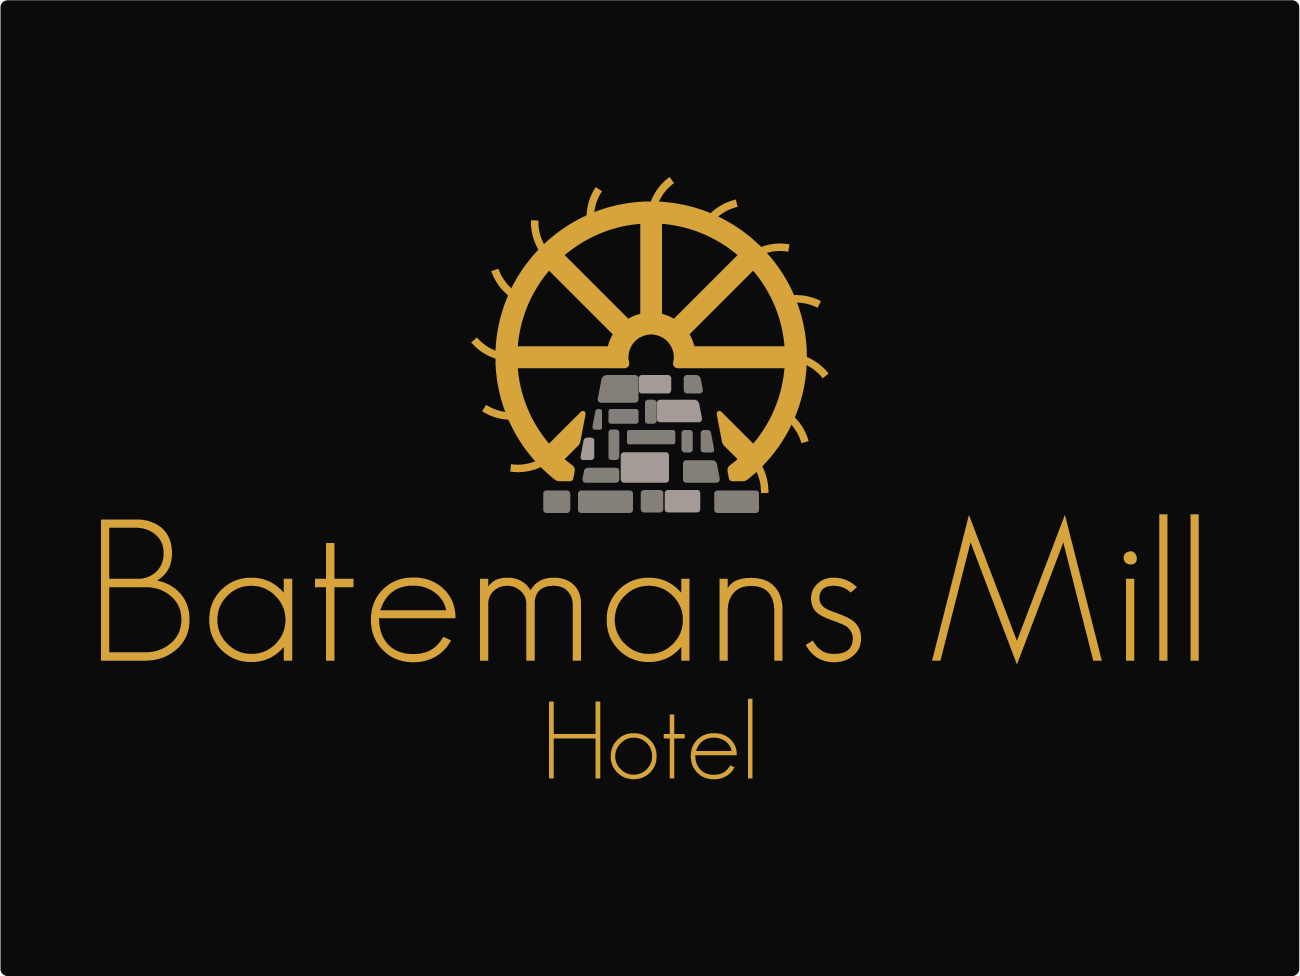 Logo of The Bateman's Mill Hotel